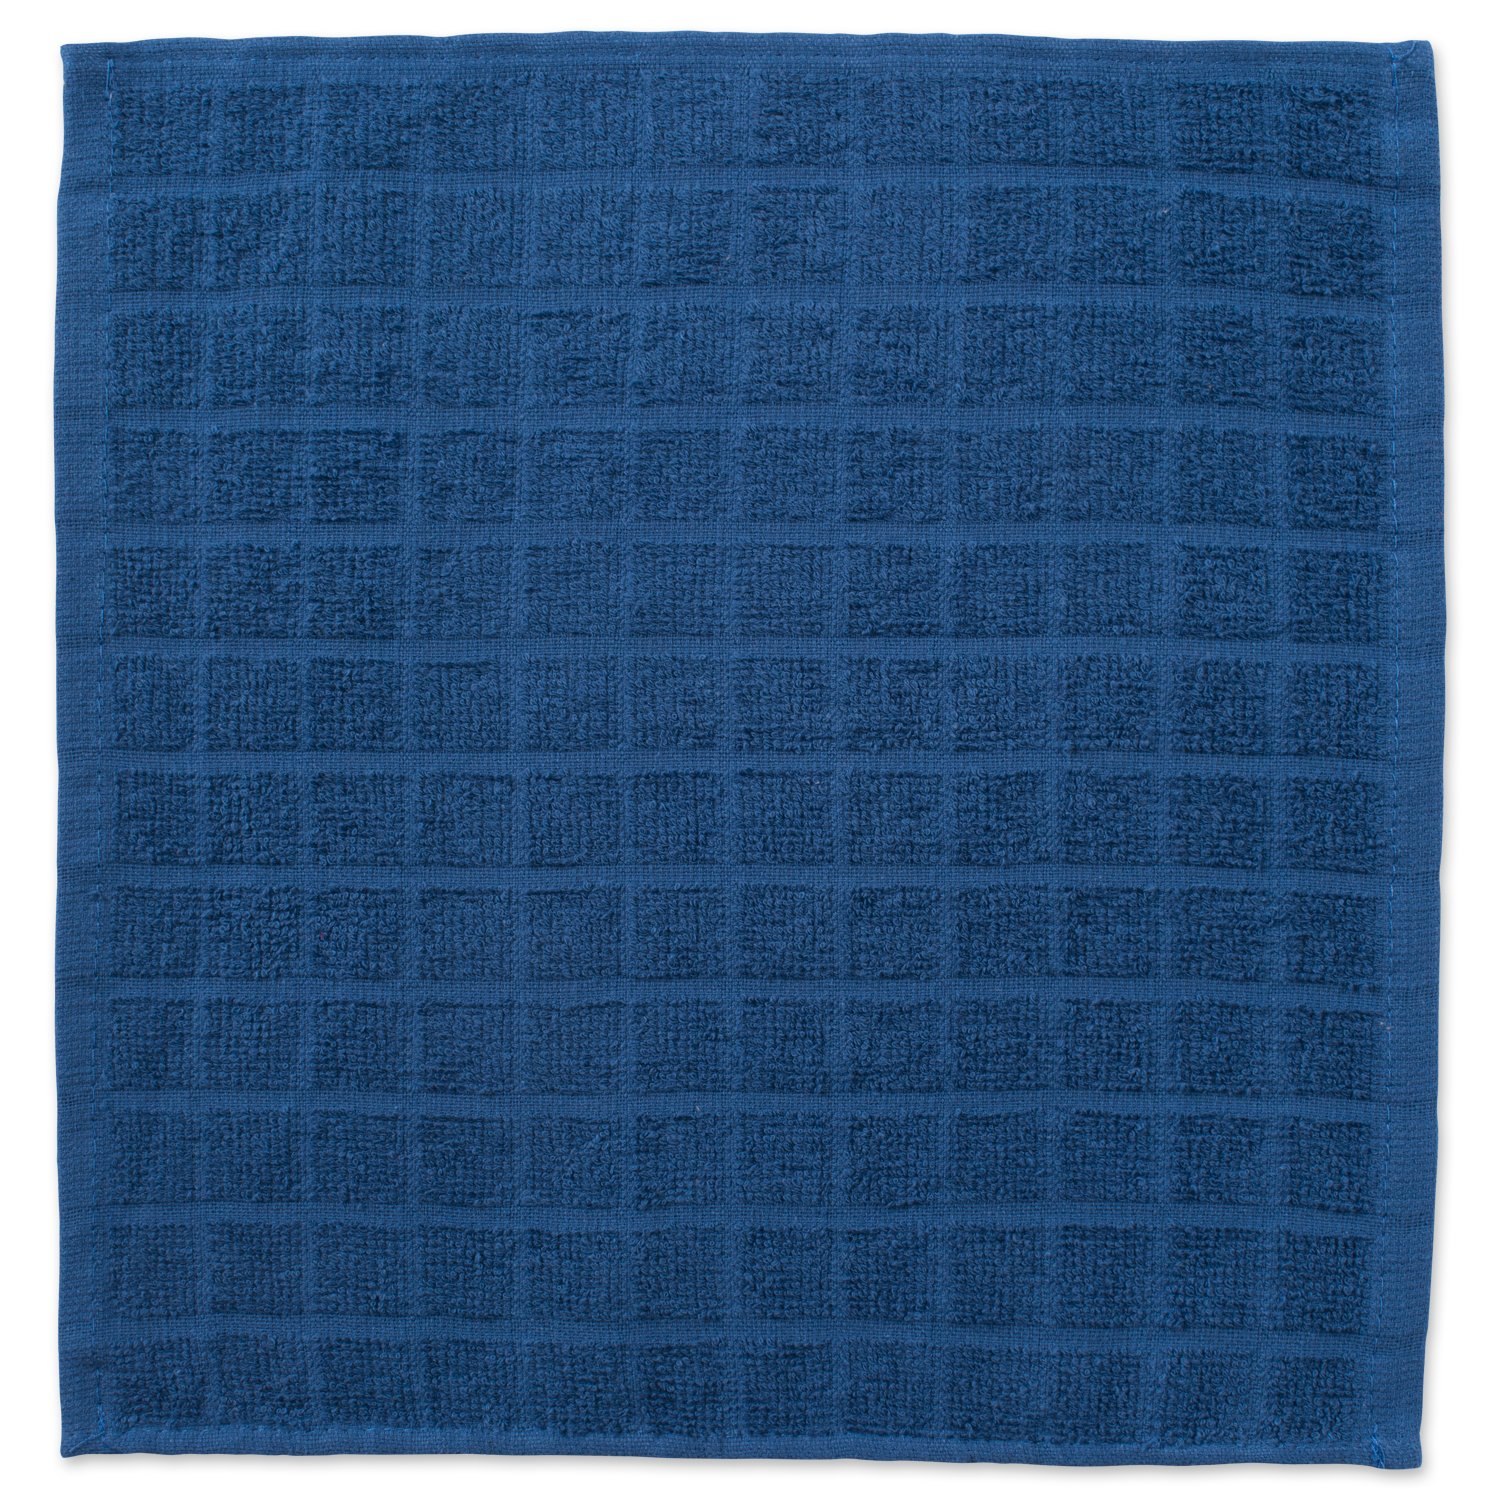 DII Cotton Terry Windowpane Dish Cloths, 12 x 12'' Set of 6, Machine Washable and Ultra Absorbent Kitchen Bar Towels-Solid Blue by DII (Image #2)